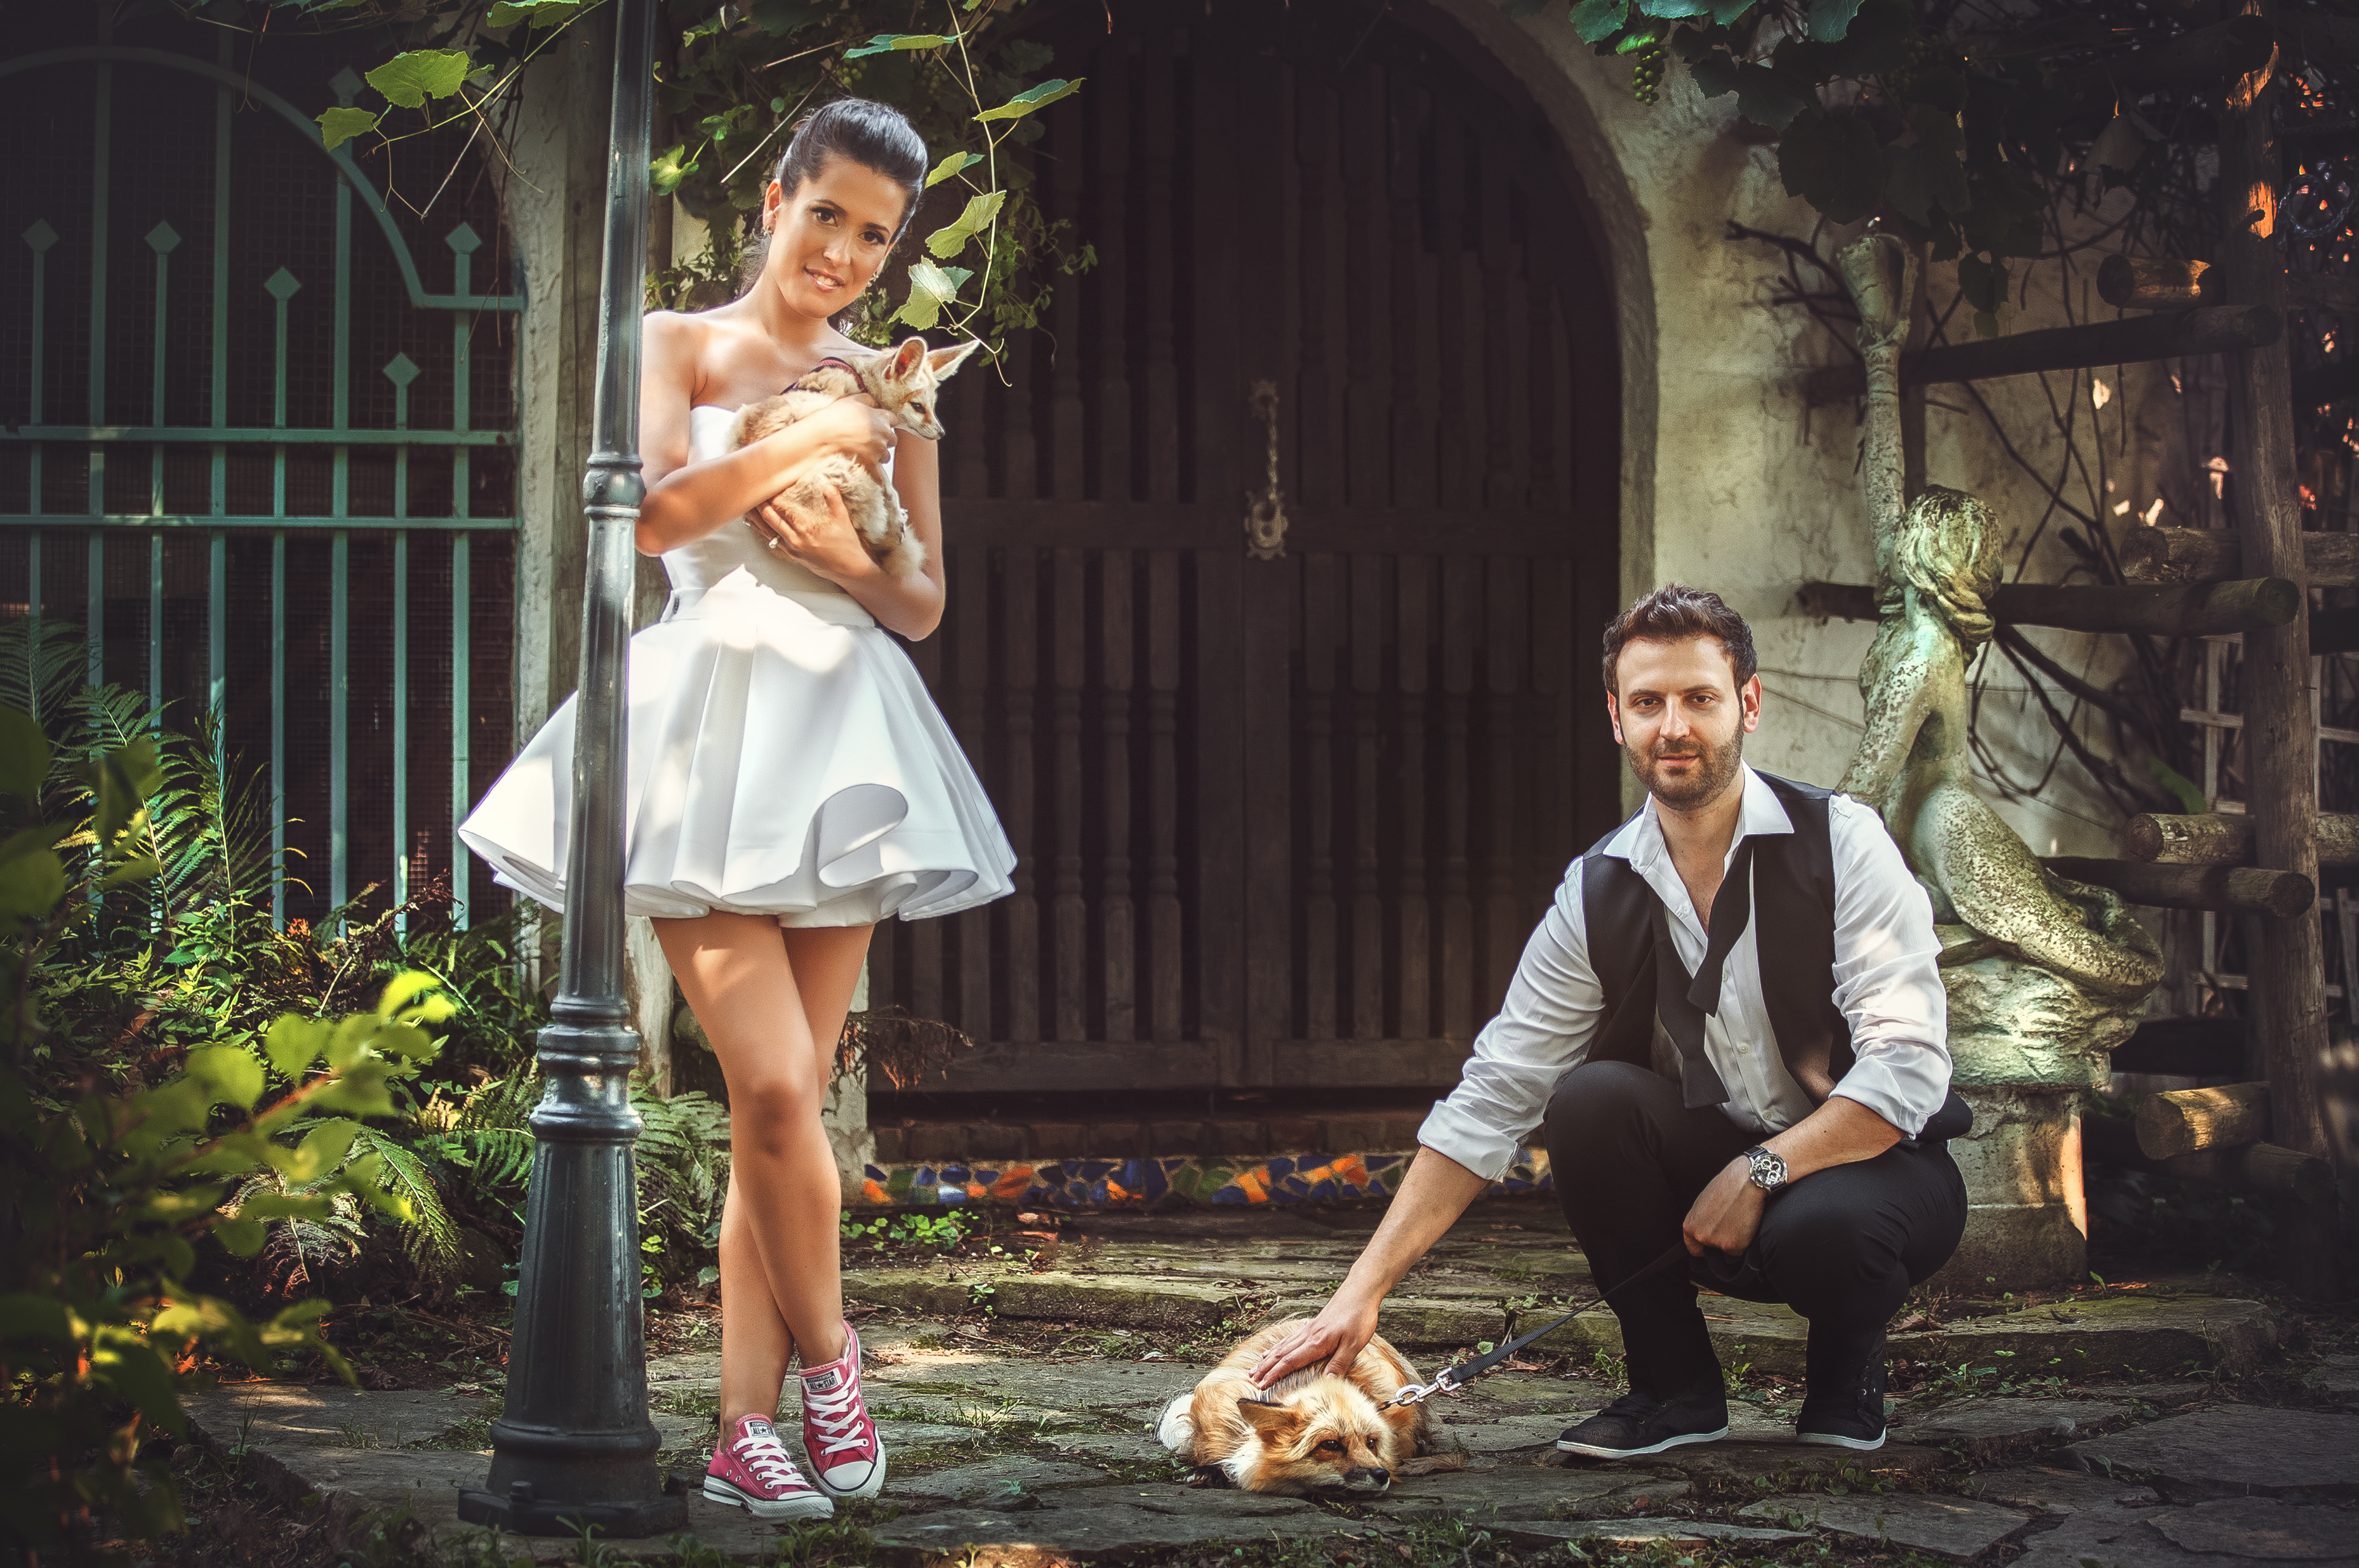 wedding photo shoot shoot ideas animals zoo